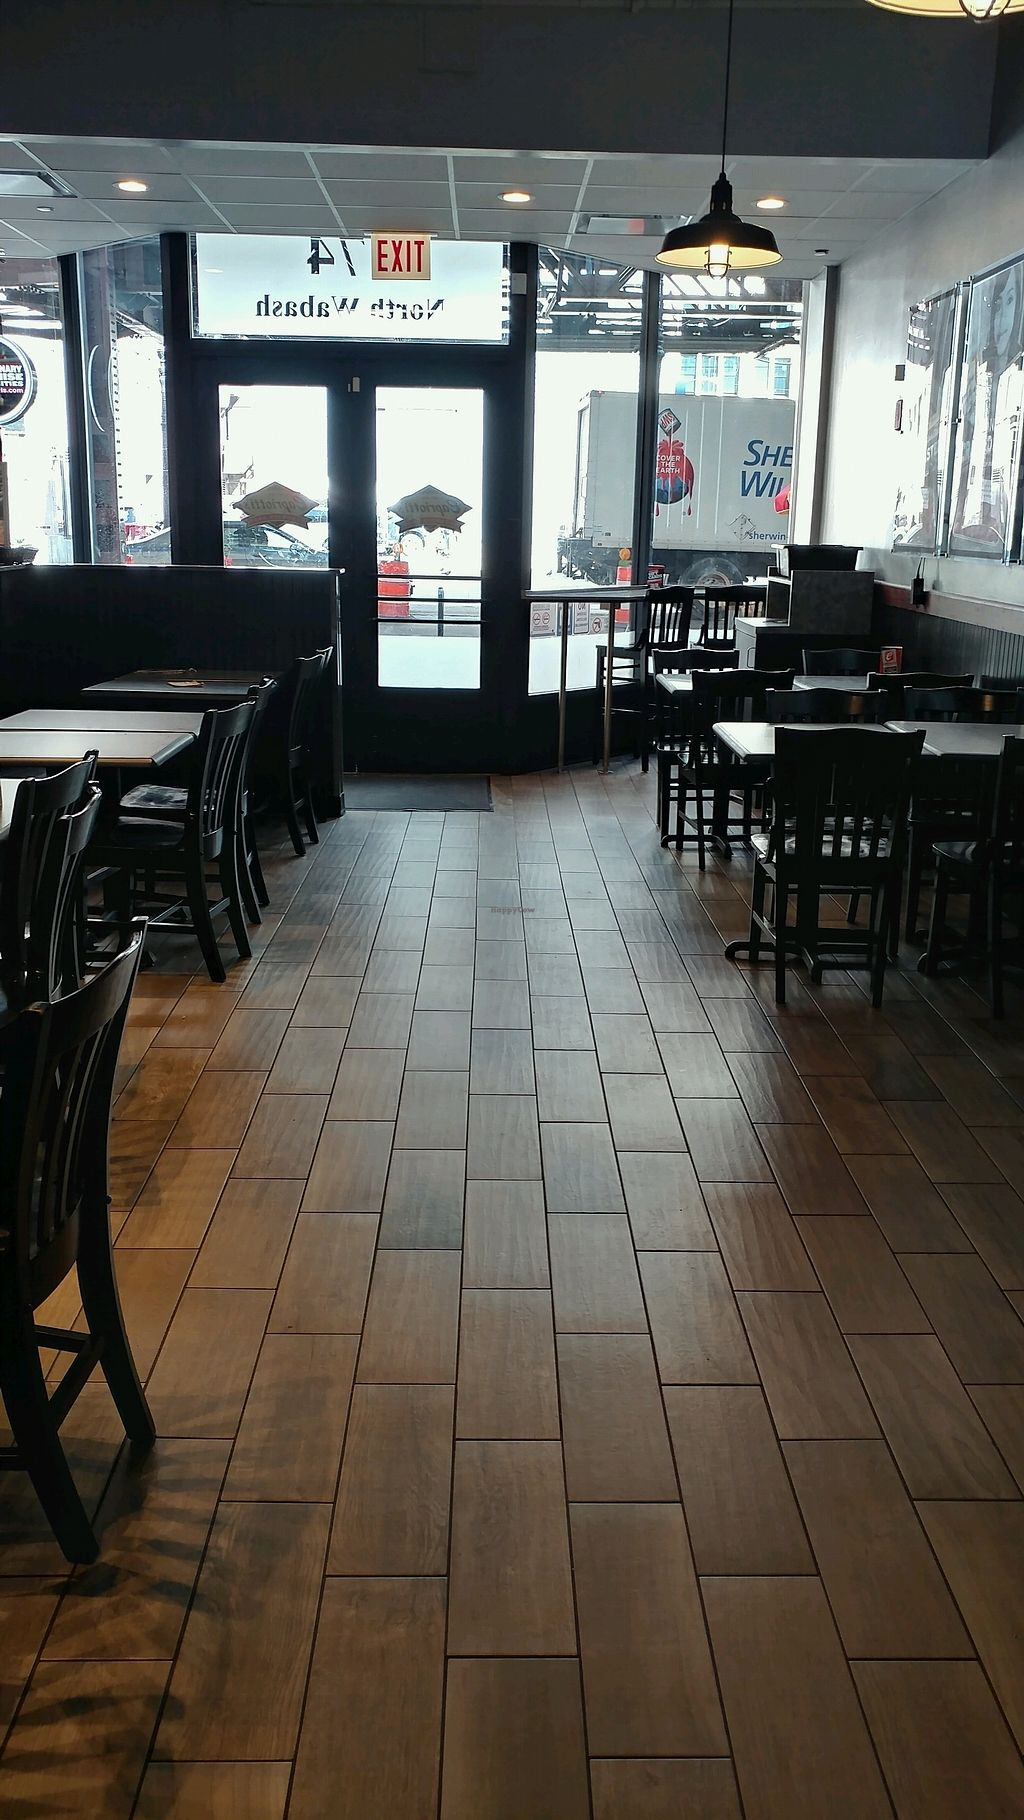 """Photo of Capriotti's Sandwich Shop  by <a href=""""/members/profile/mster9ball1"""">mster9ball1</a> <br/>great seating options <br/> September 18, 2017  - <a href='/contact/abuse/image/82834/305834'>Report</a>"""